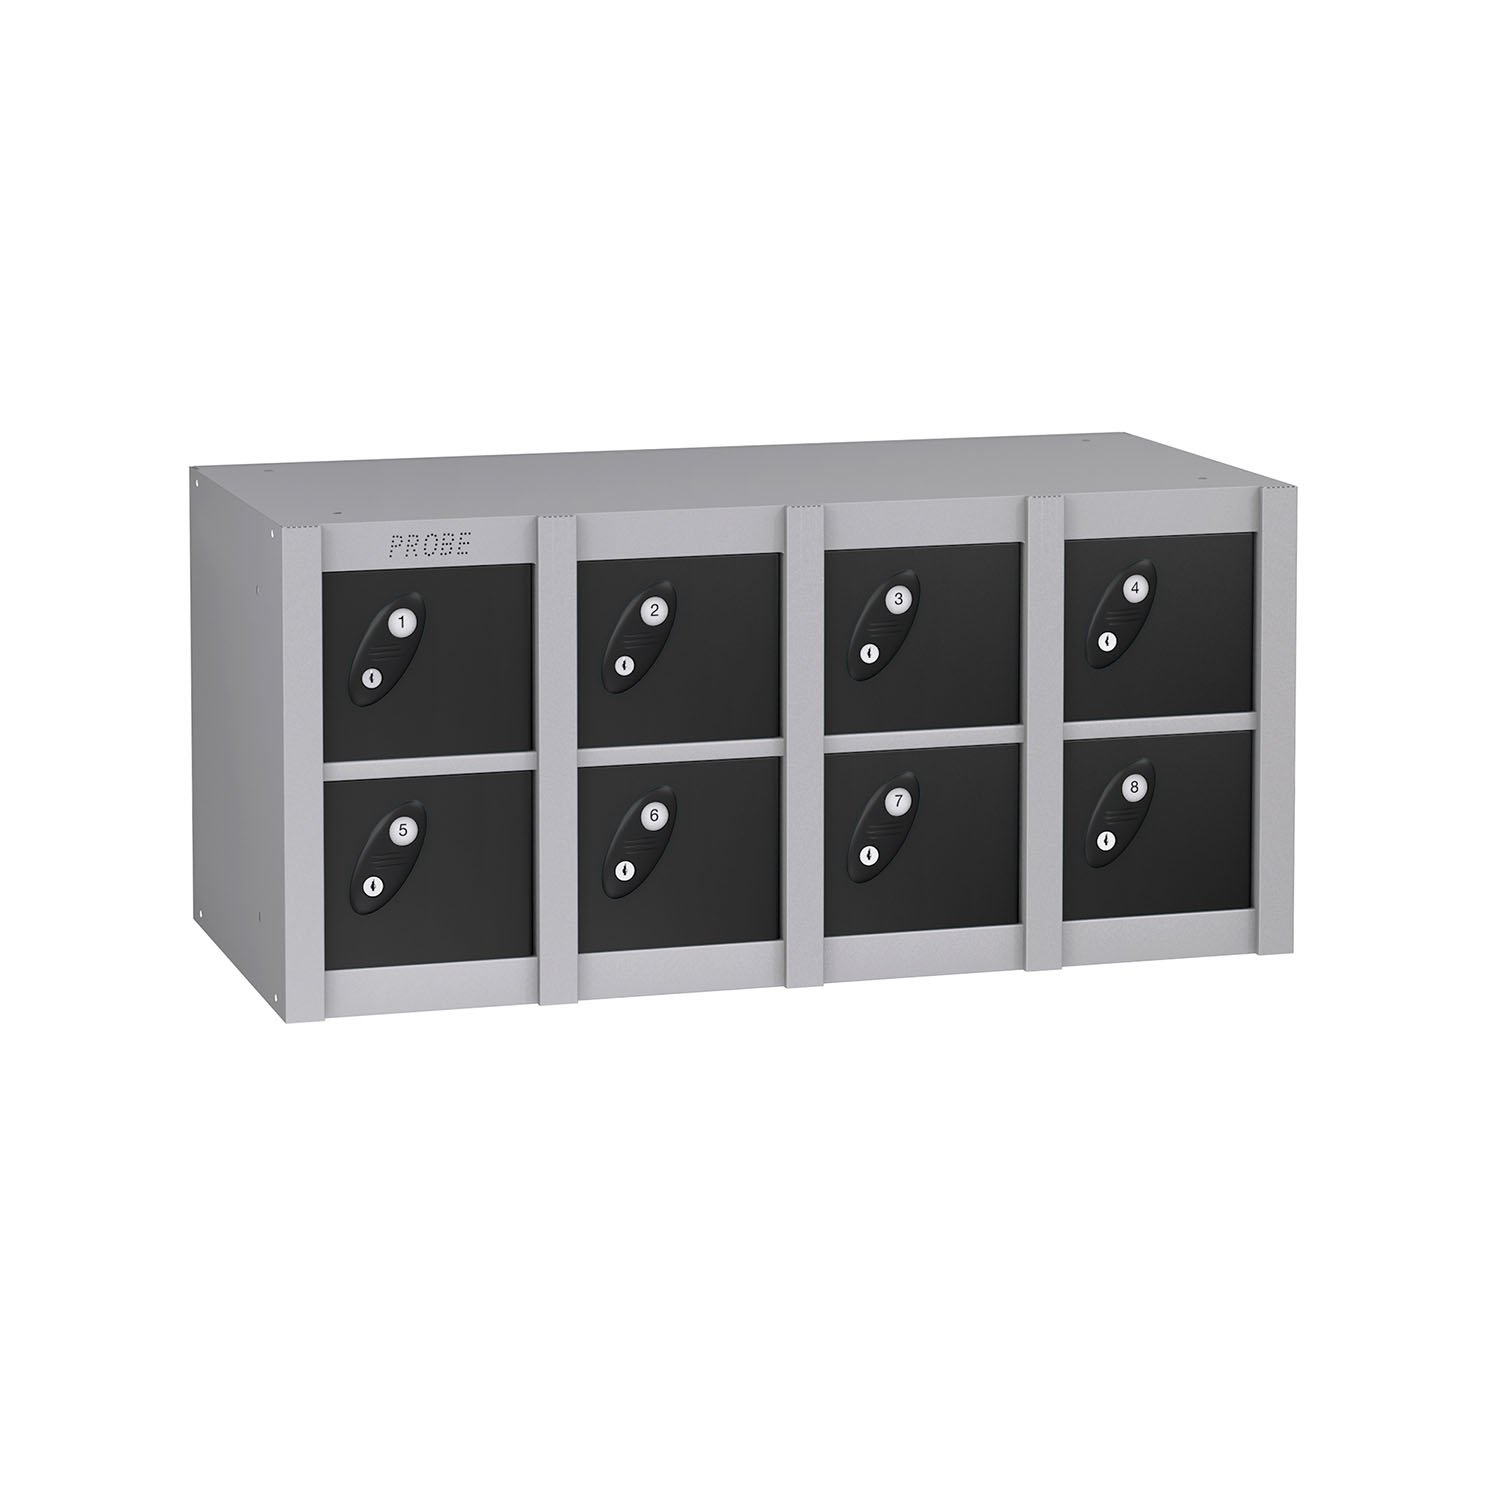 Probe 8 doors minibox lockers in black colour